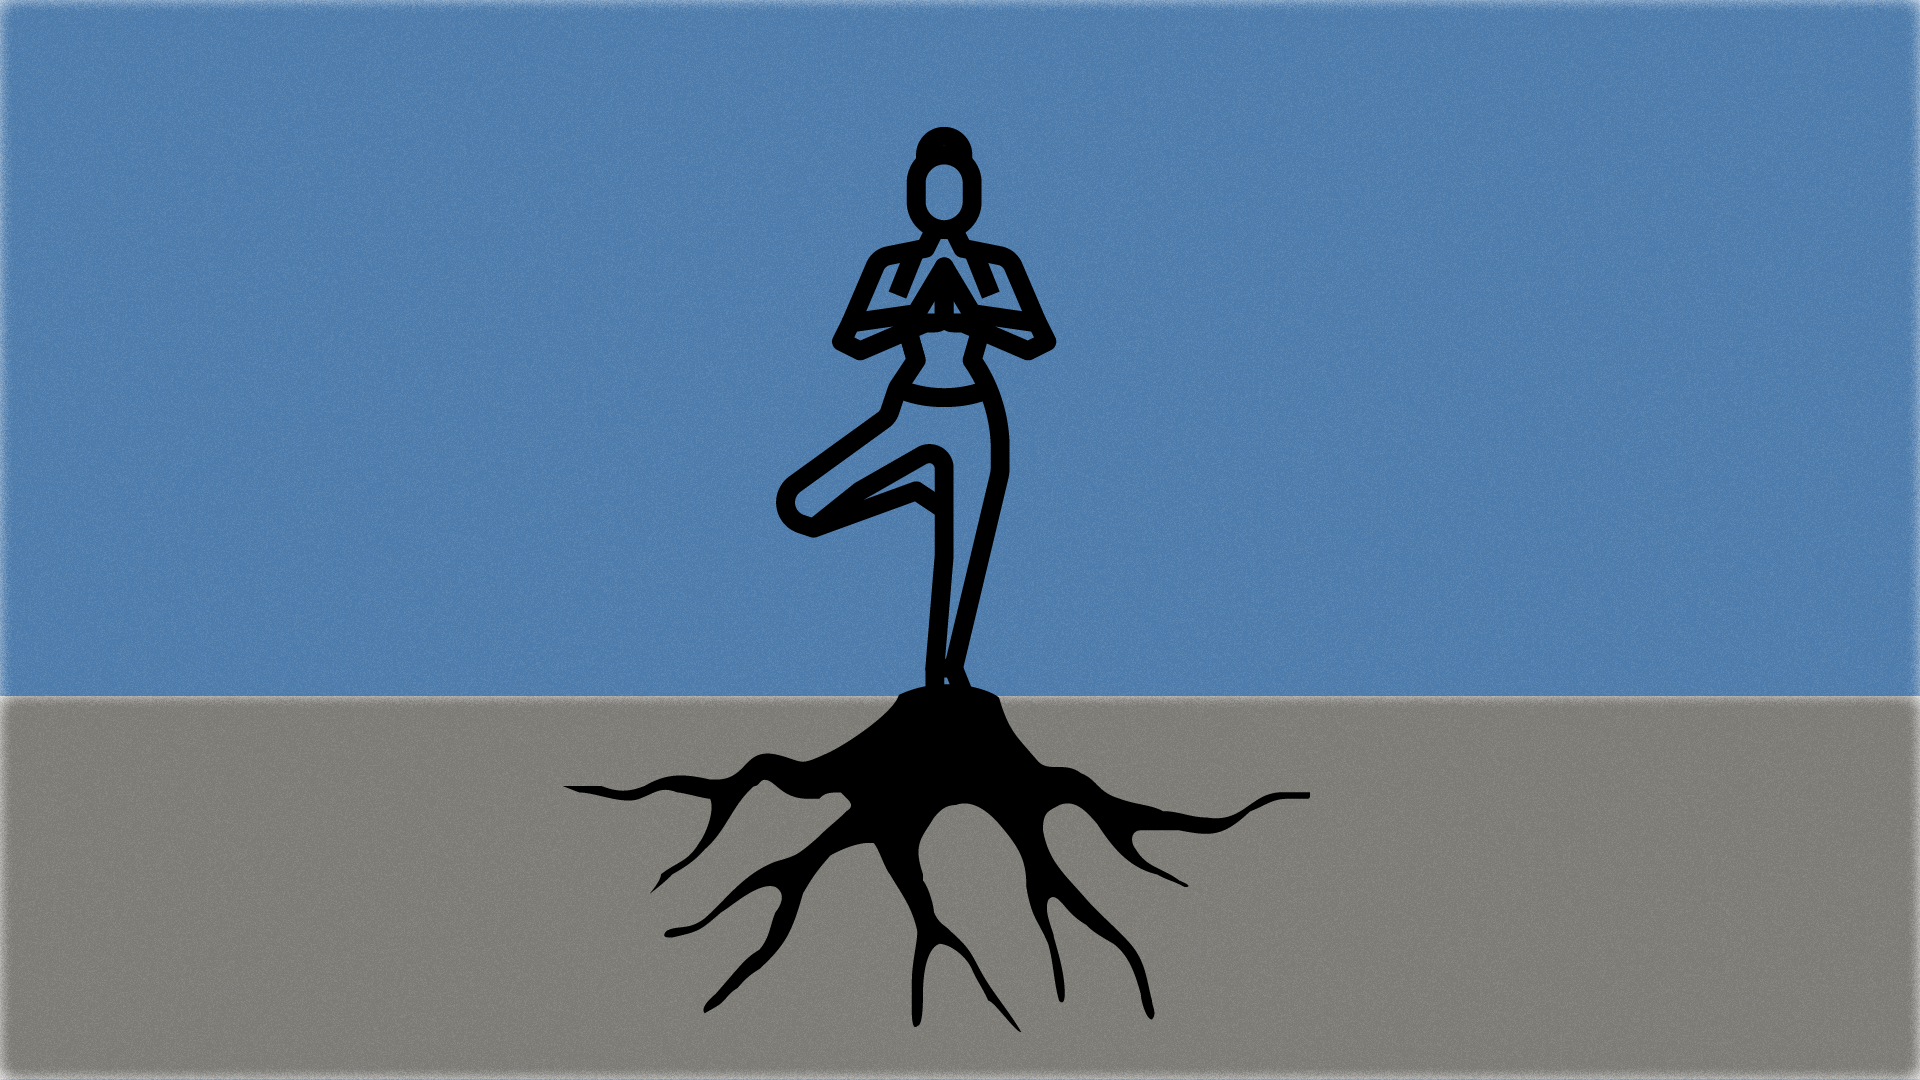 A female figure meditating on top of a tree trunk with roots. The background is grey and blue.